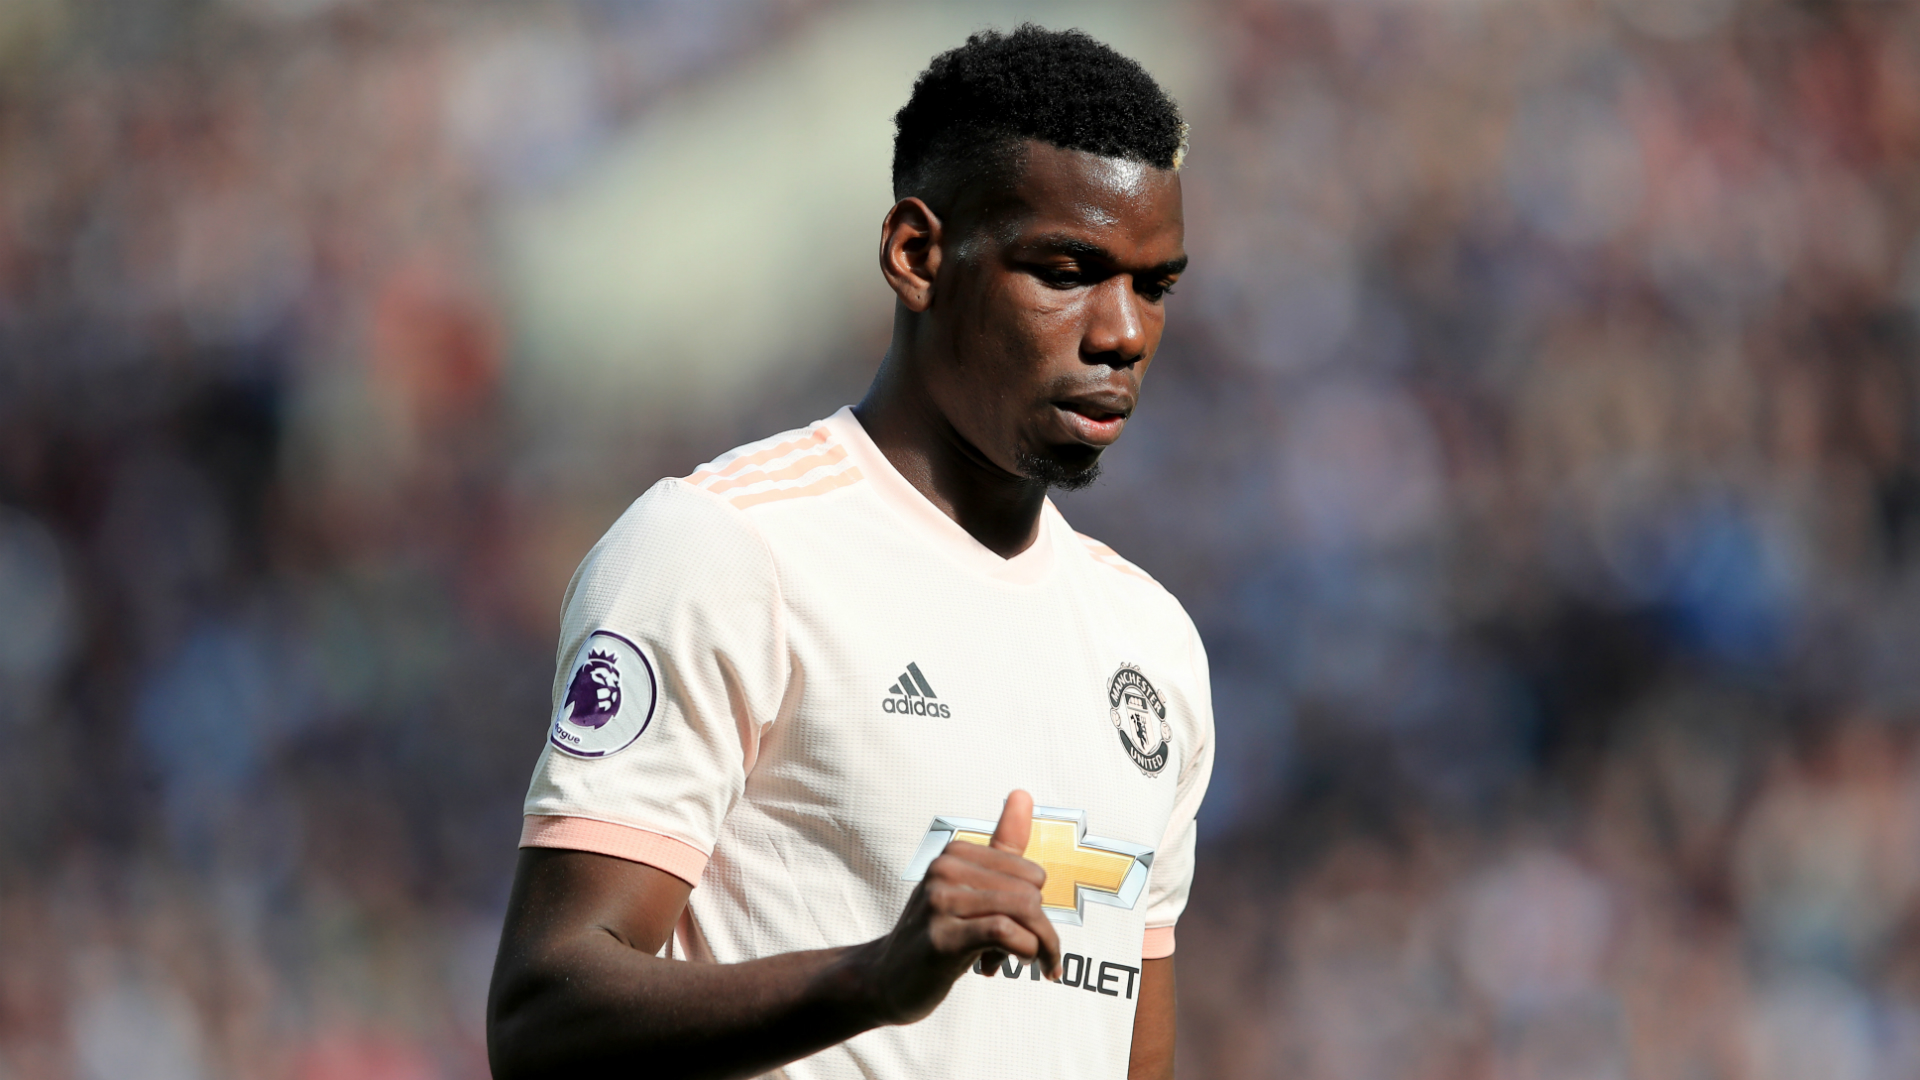 Paul Pogba tells teammates he is embarrassed by Jose Mourinho's tactics